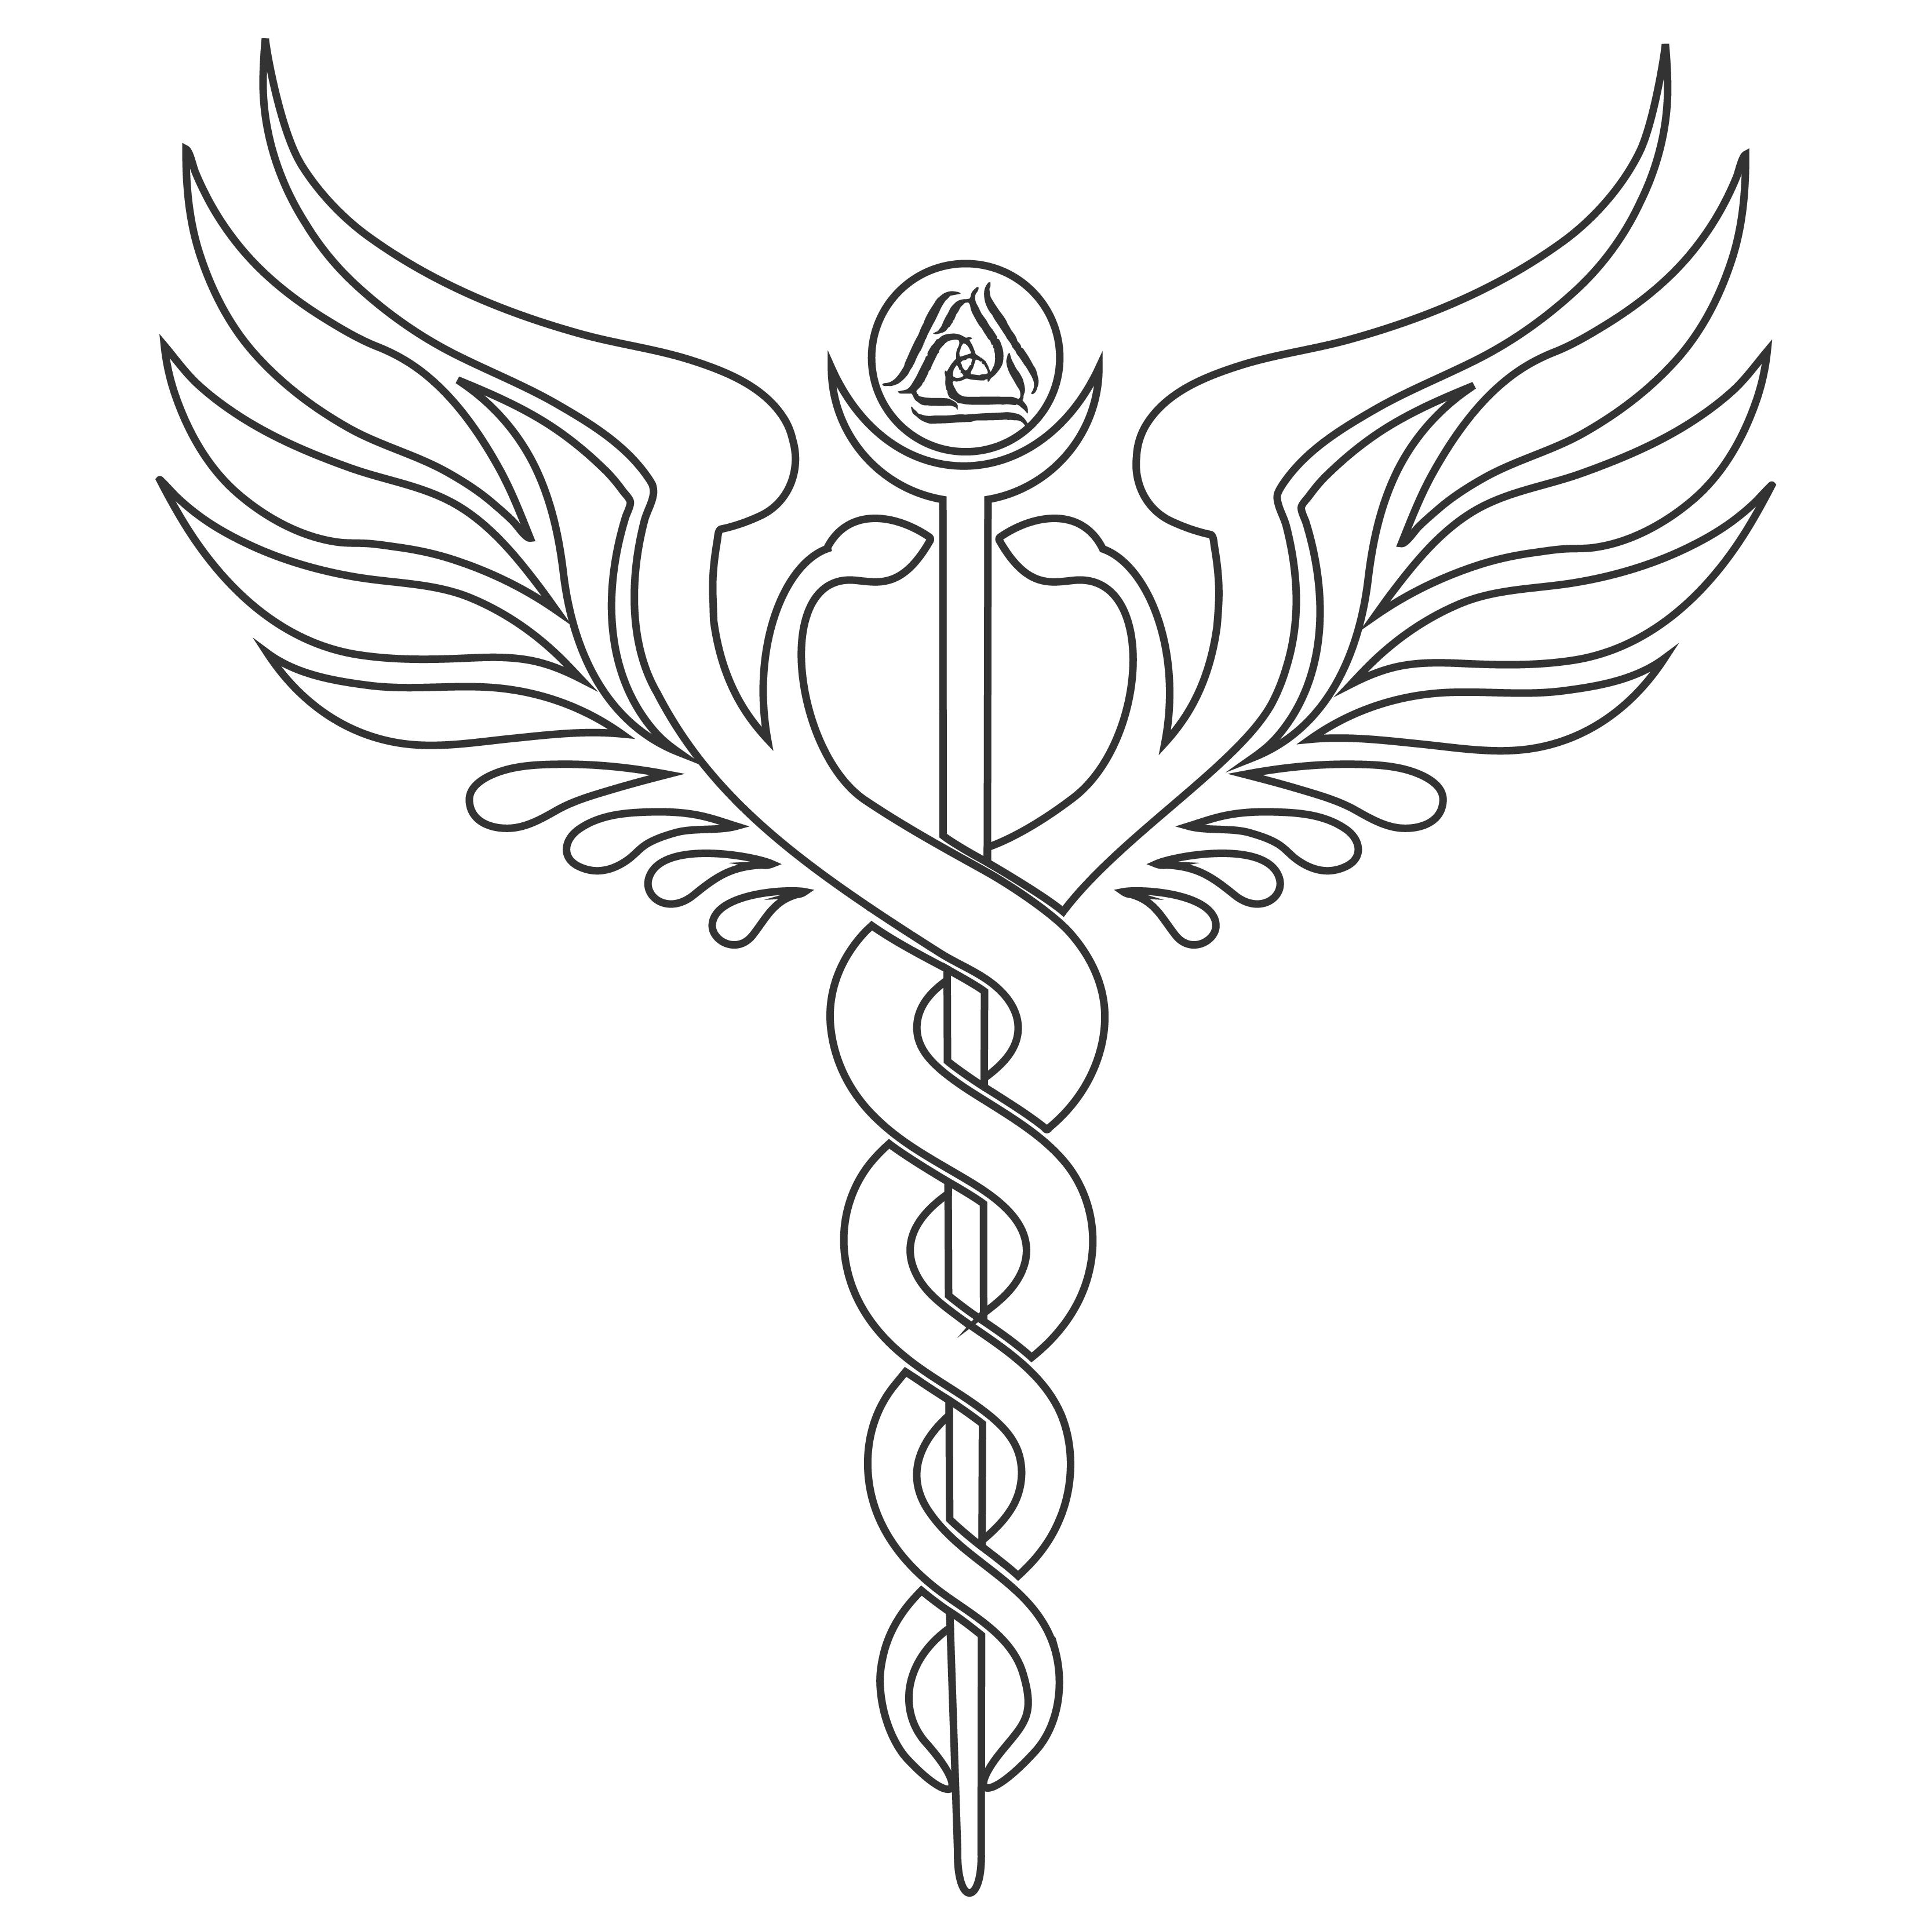 the caduceus depicted on the front cover of conscious connection